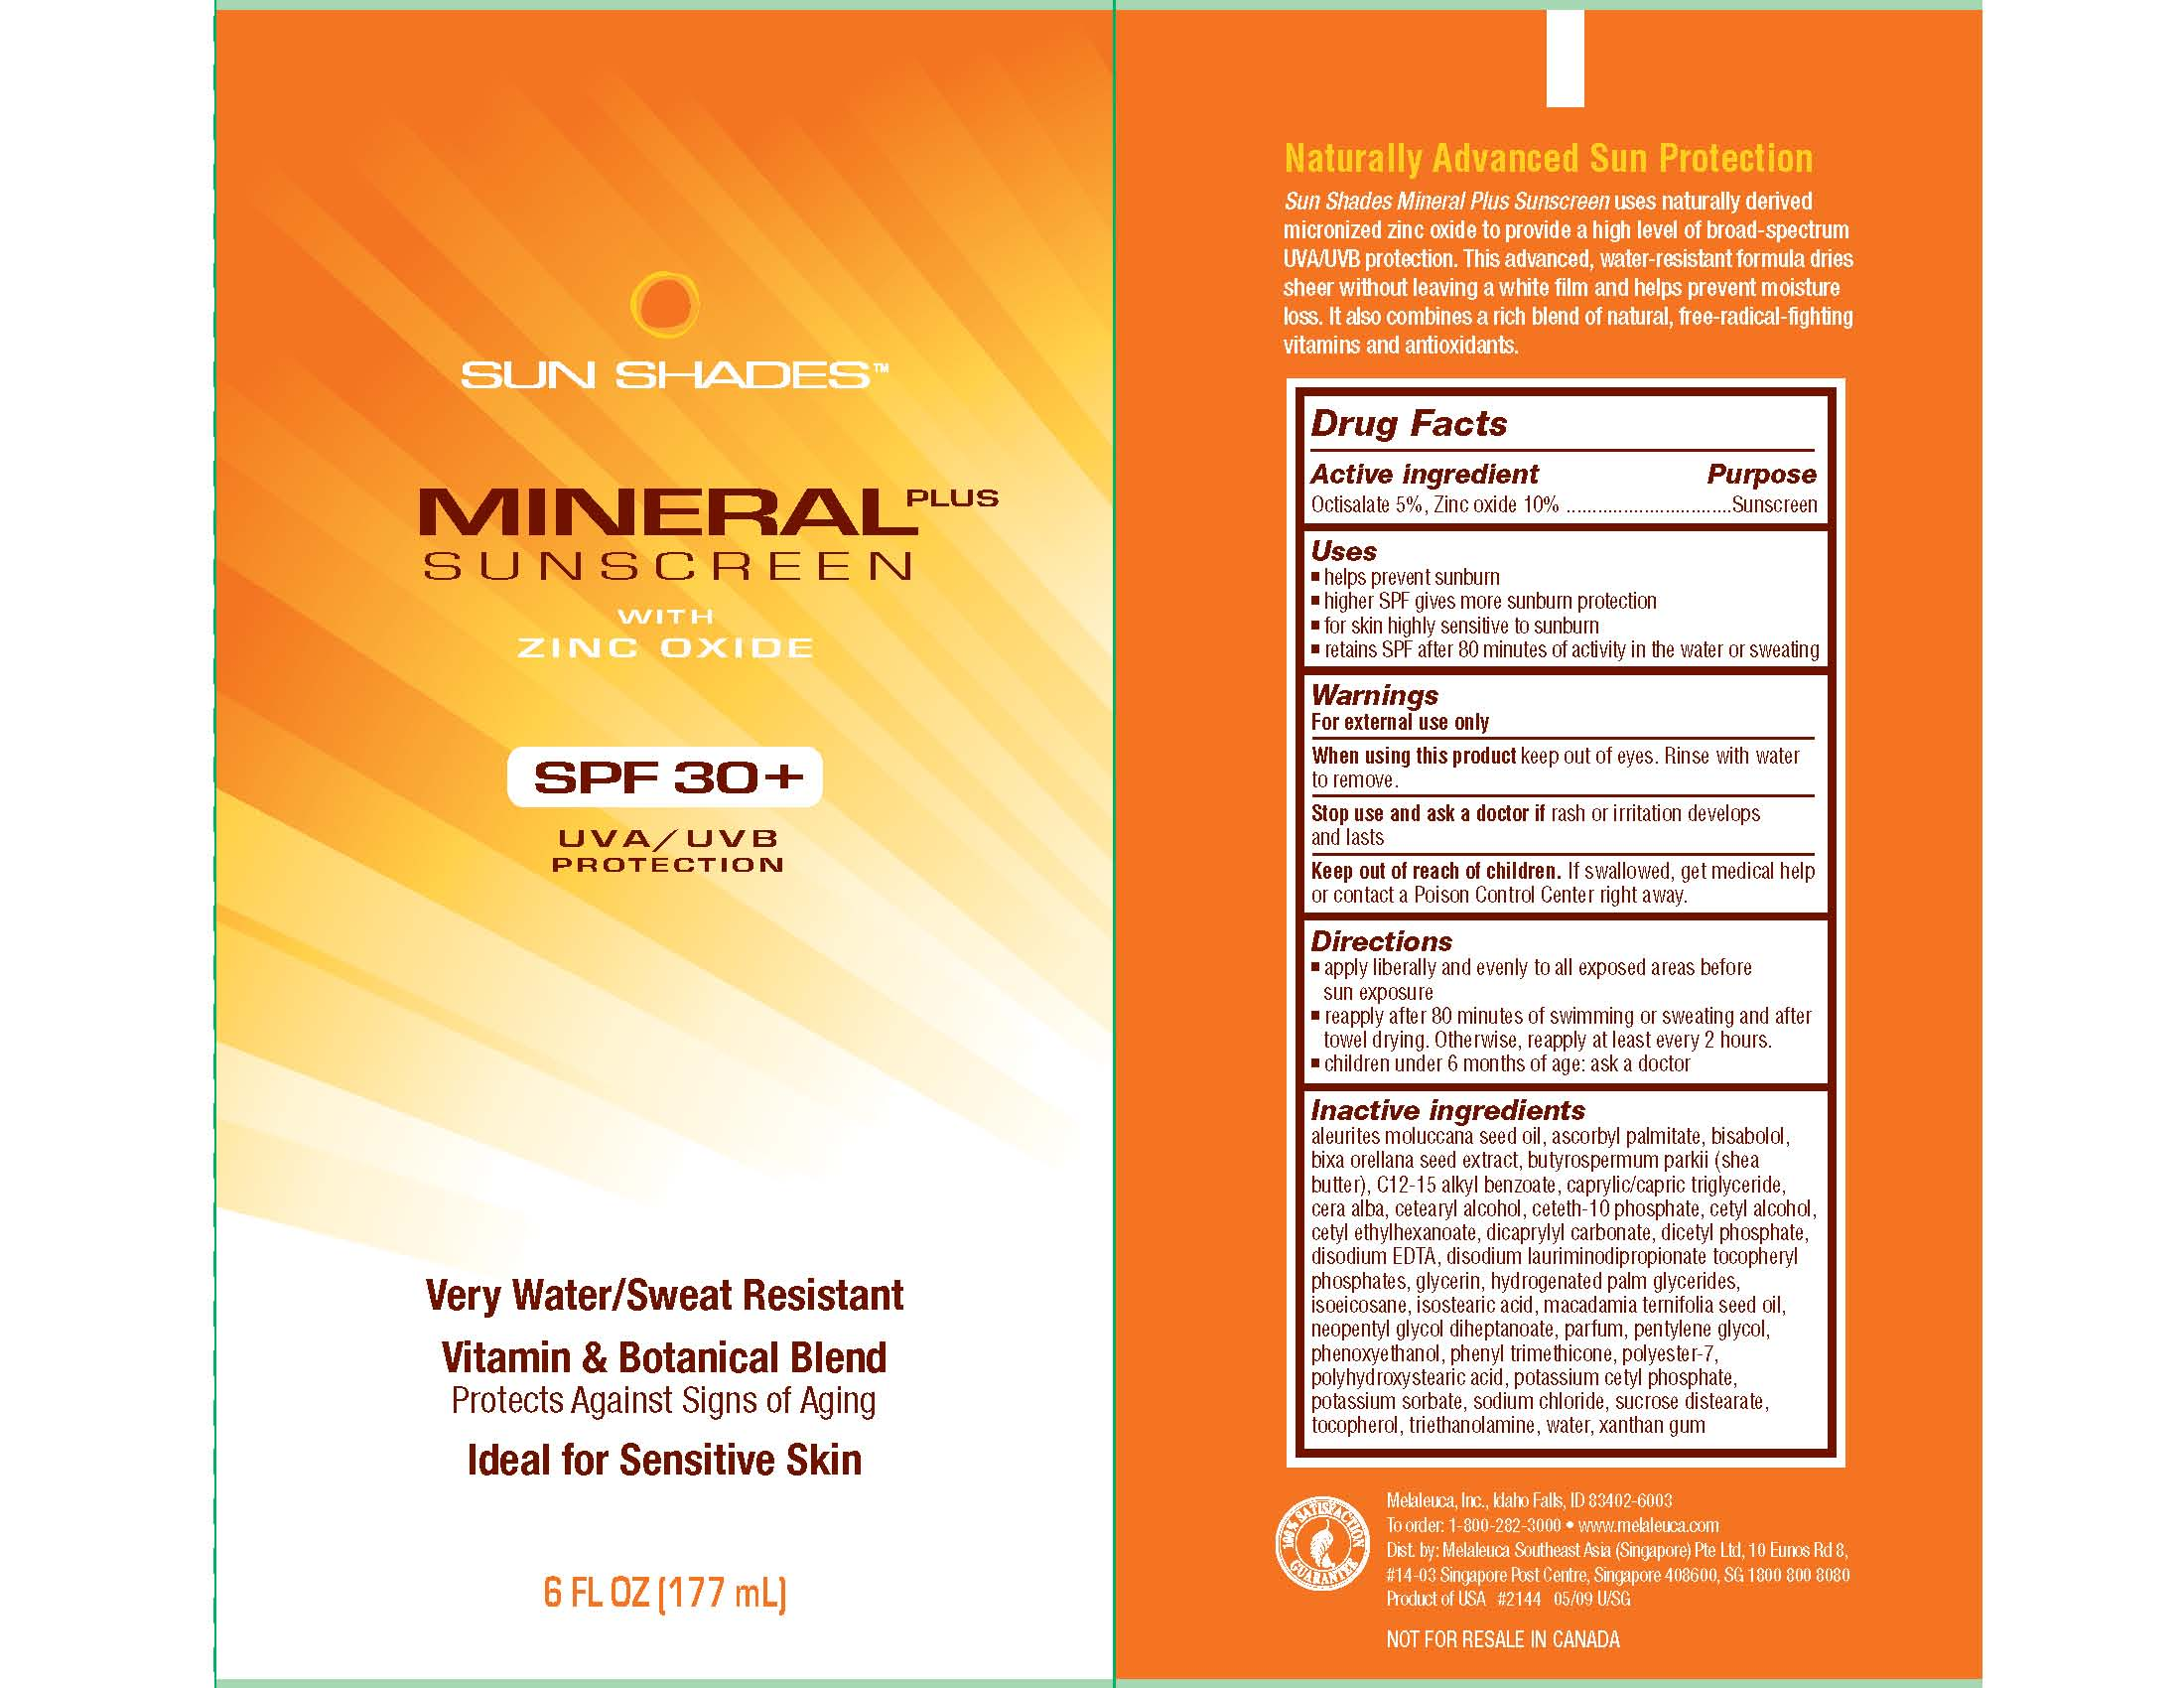 Sun Shades Mineral Plus Sunscreen (Octisalate And Zinc Oxide) Cream [Melaleuca, Inc.]